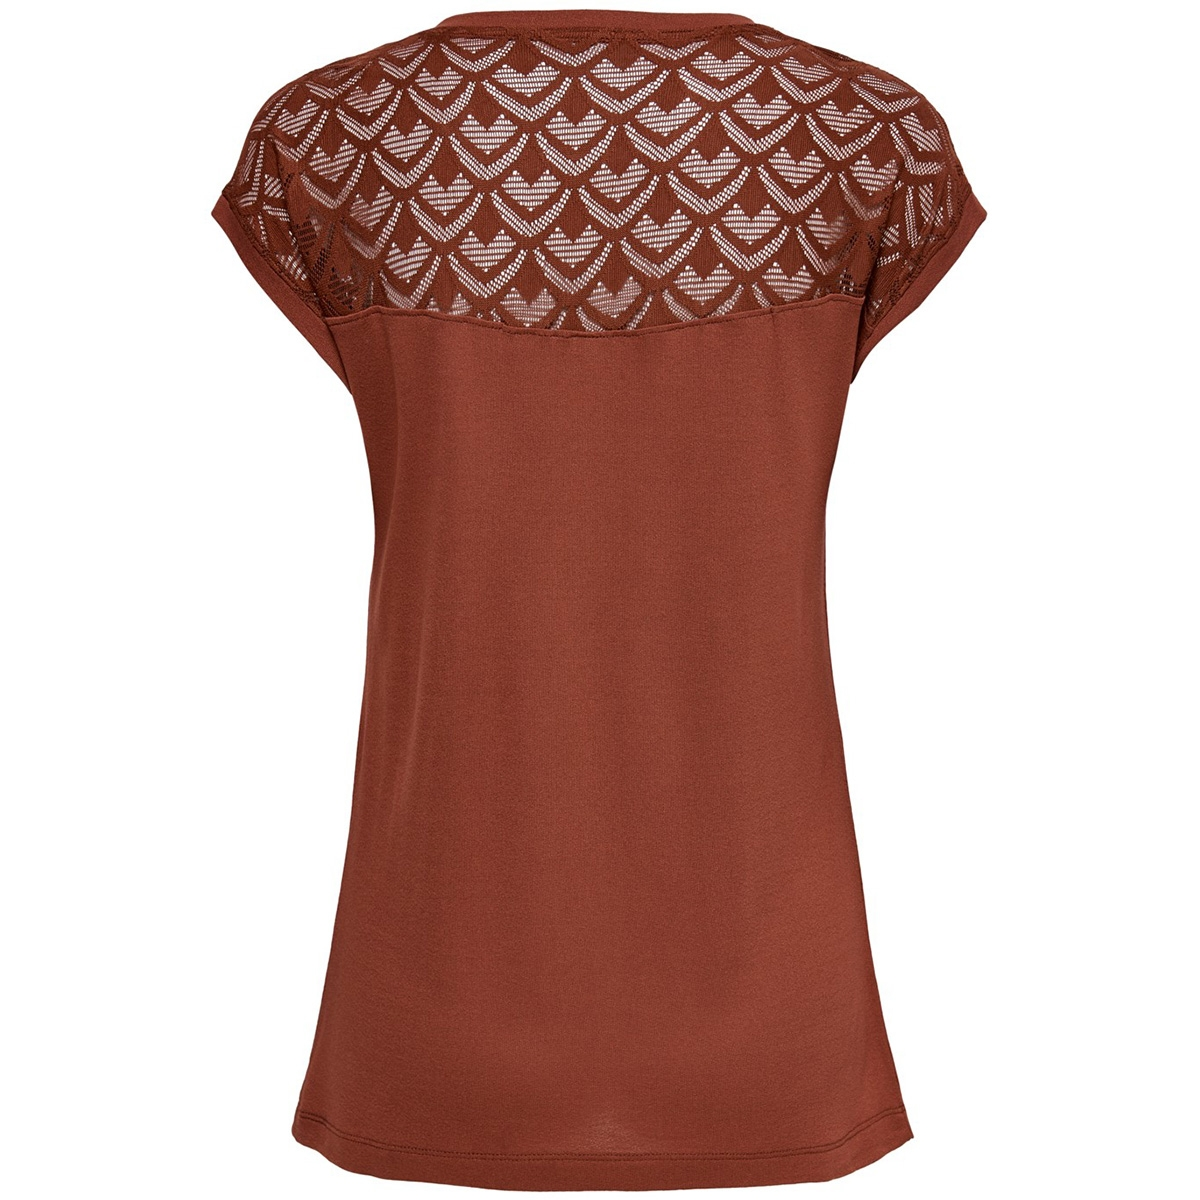 onlnicole s/s mix top noos 15151008 only t-shirt henna